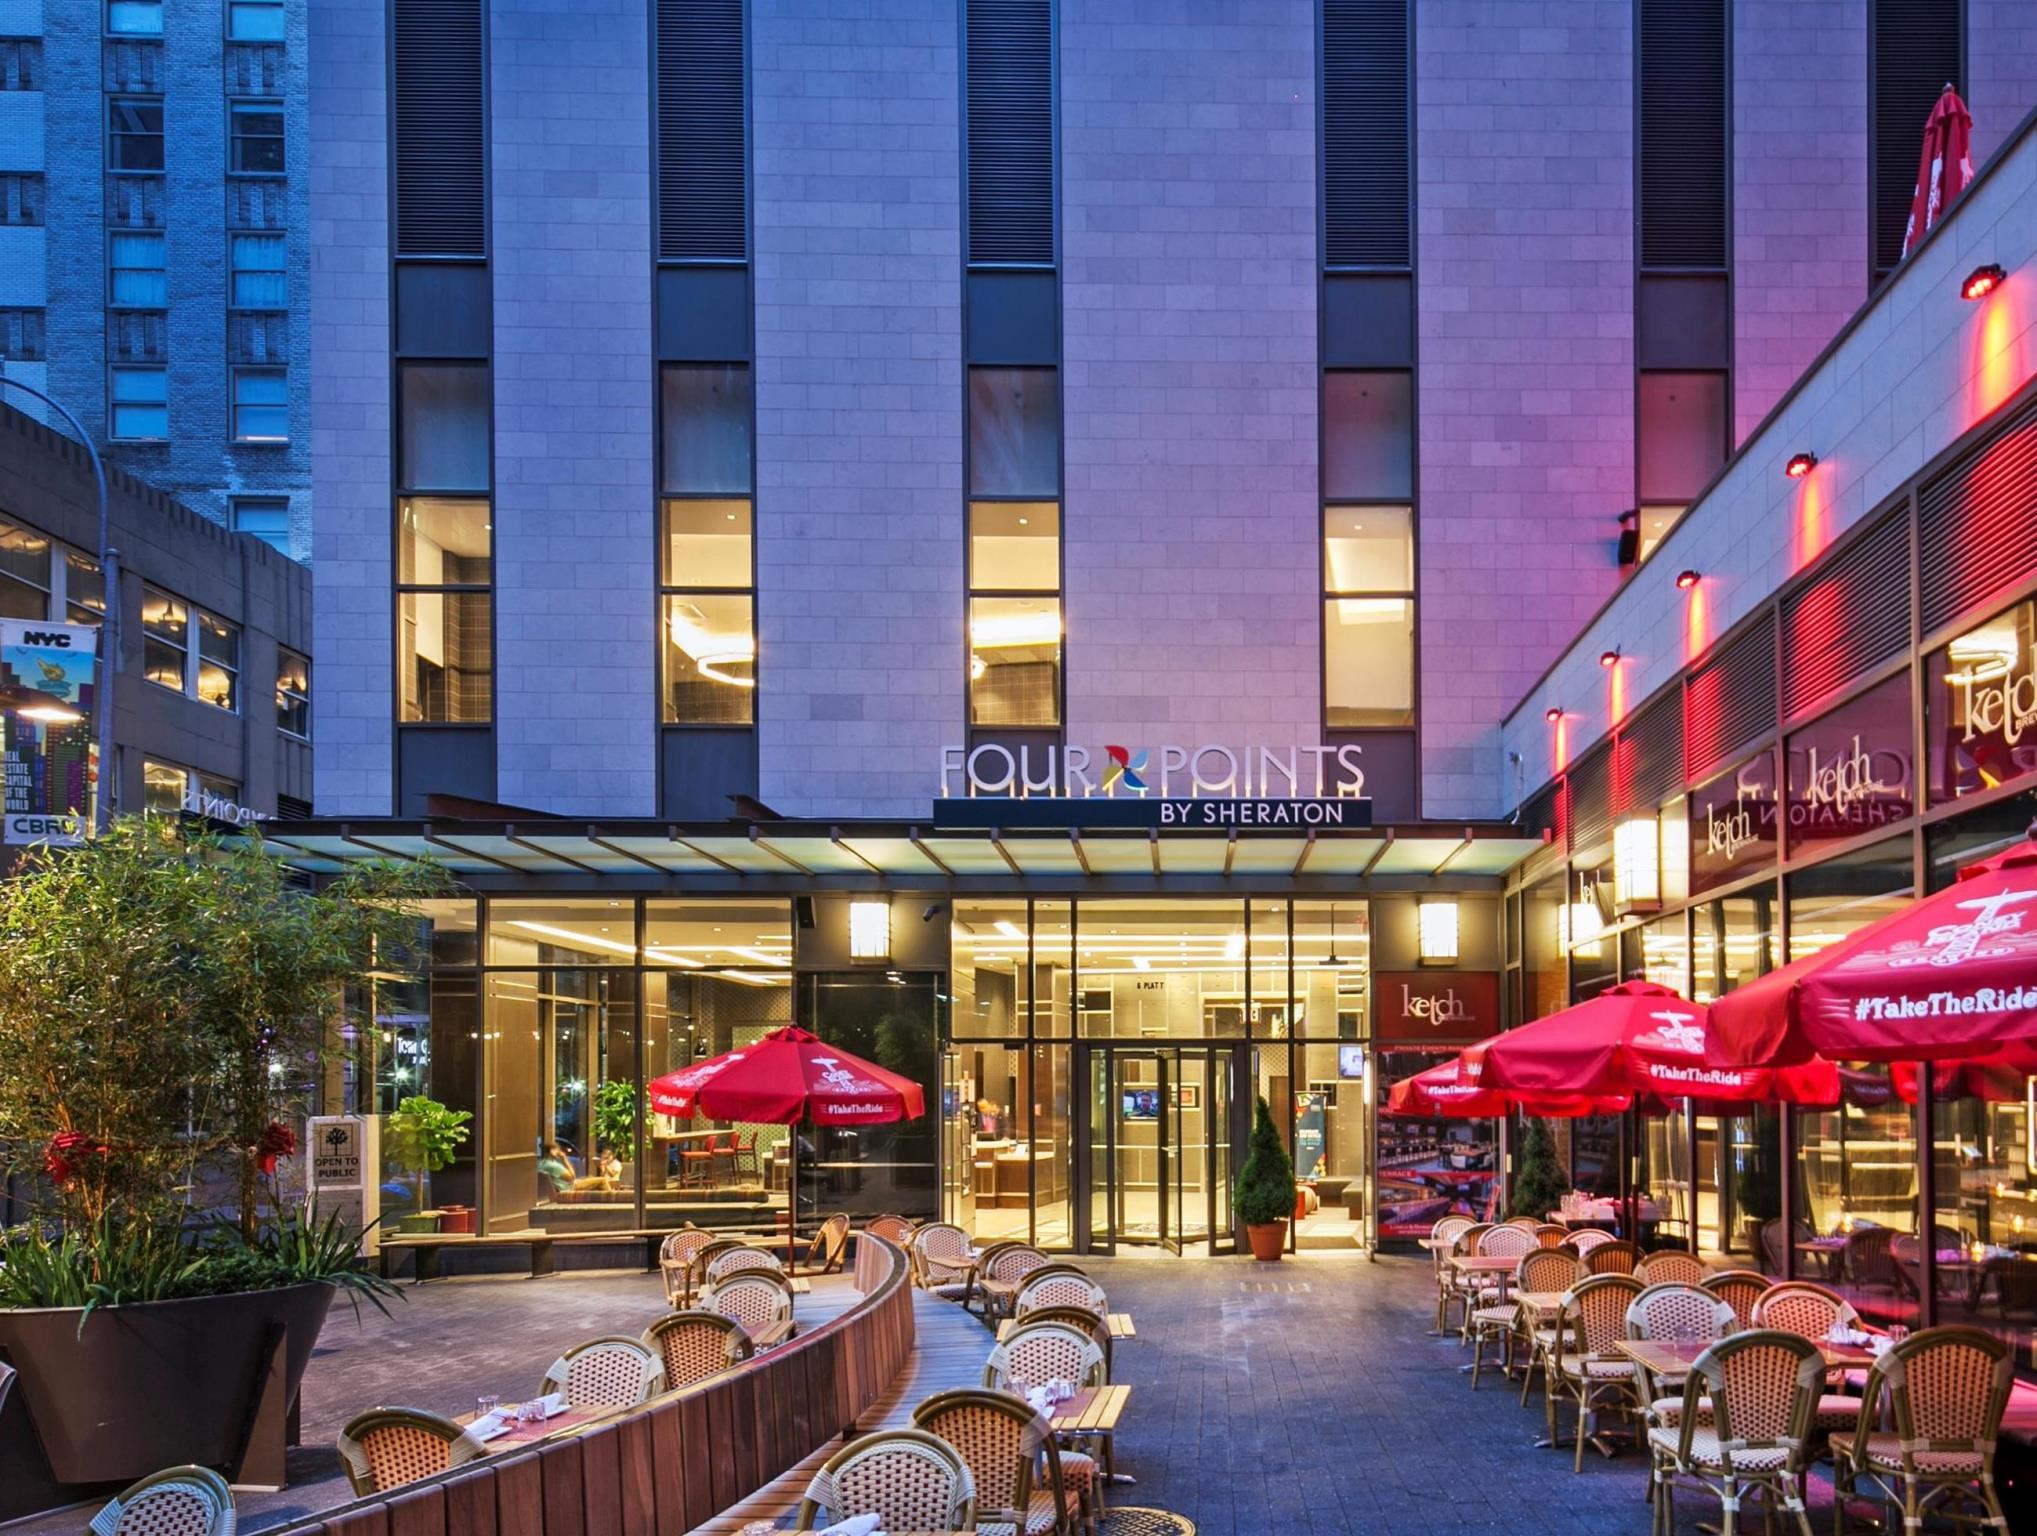 Hotel Review: Four Points by Sheraton New York Downtown – Photos, Rates & Deals